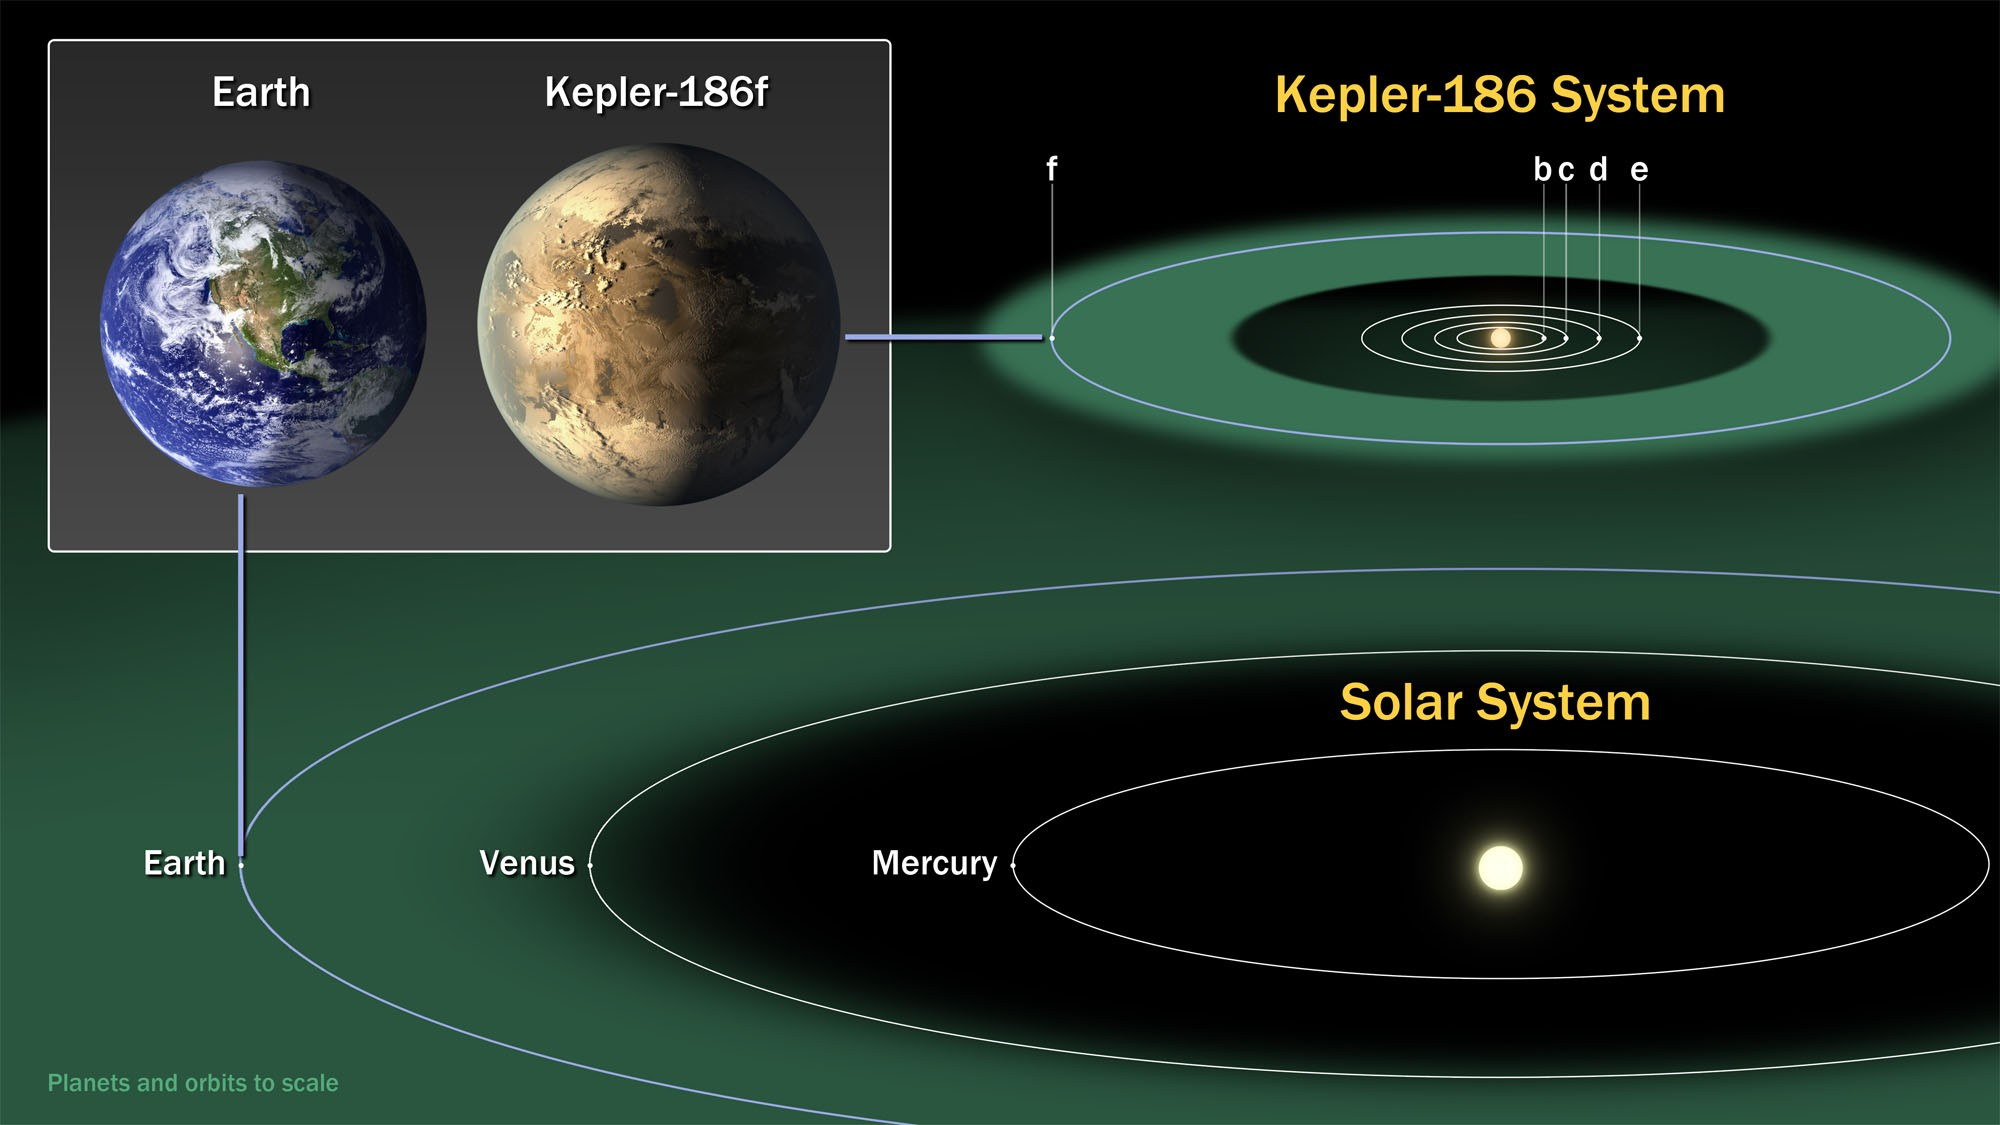 Kepler-186 System Diagram